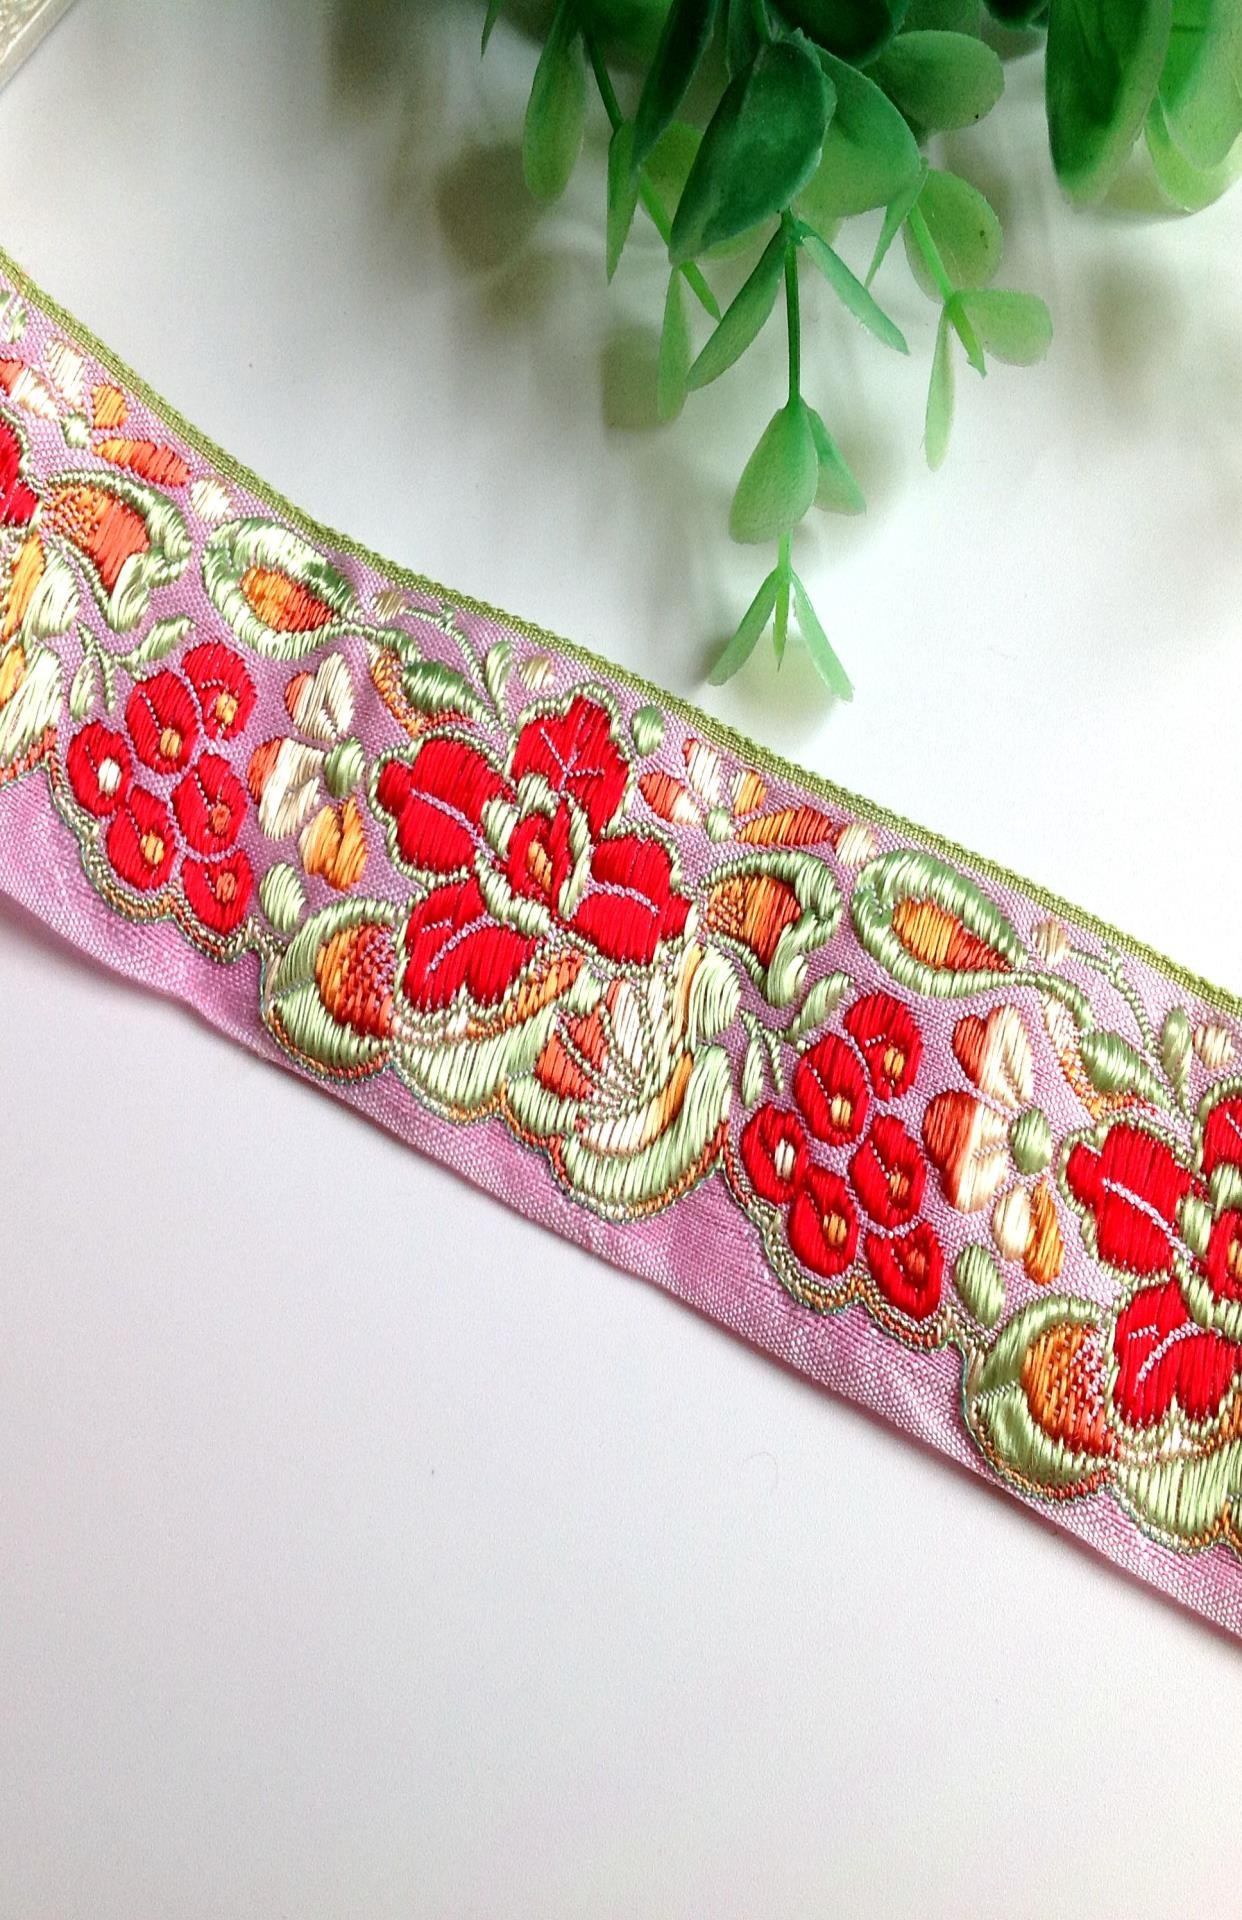 New national style lace accessories decorative cloth curtain cotton rayon embroidery jacquard webbing belt manual